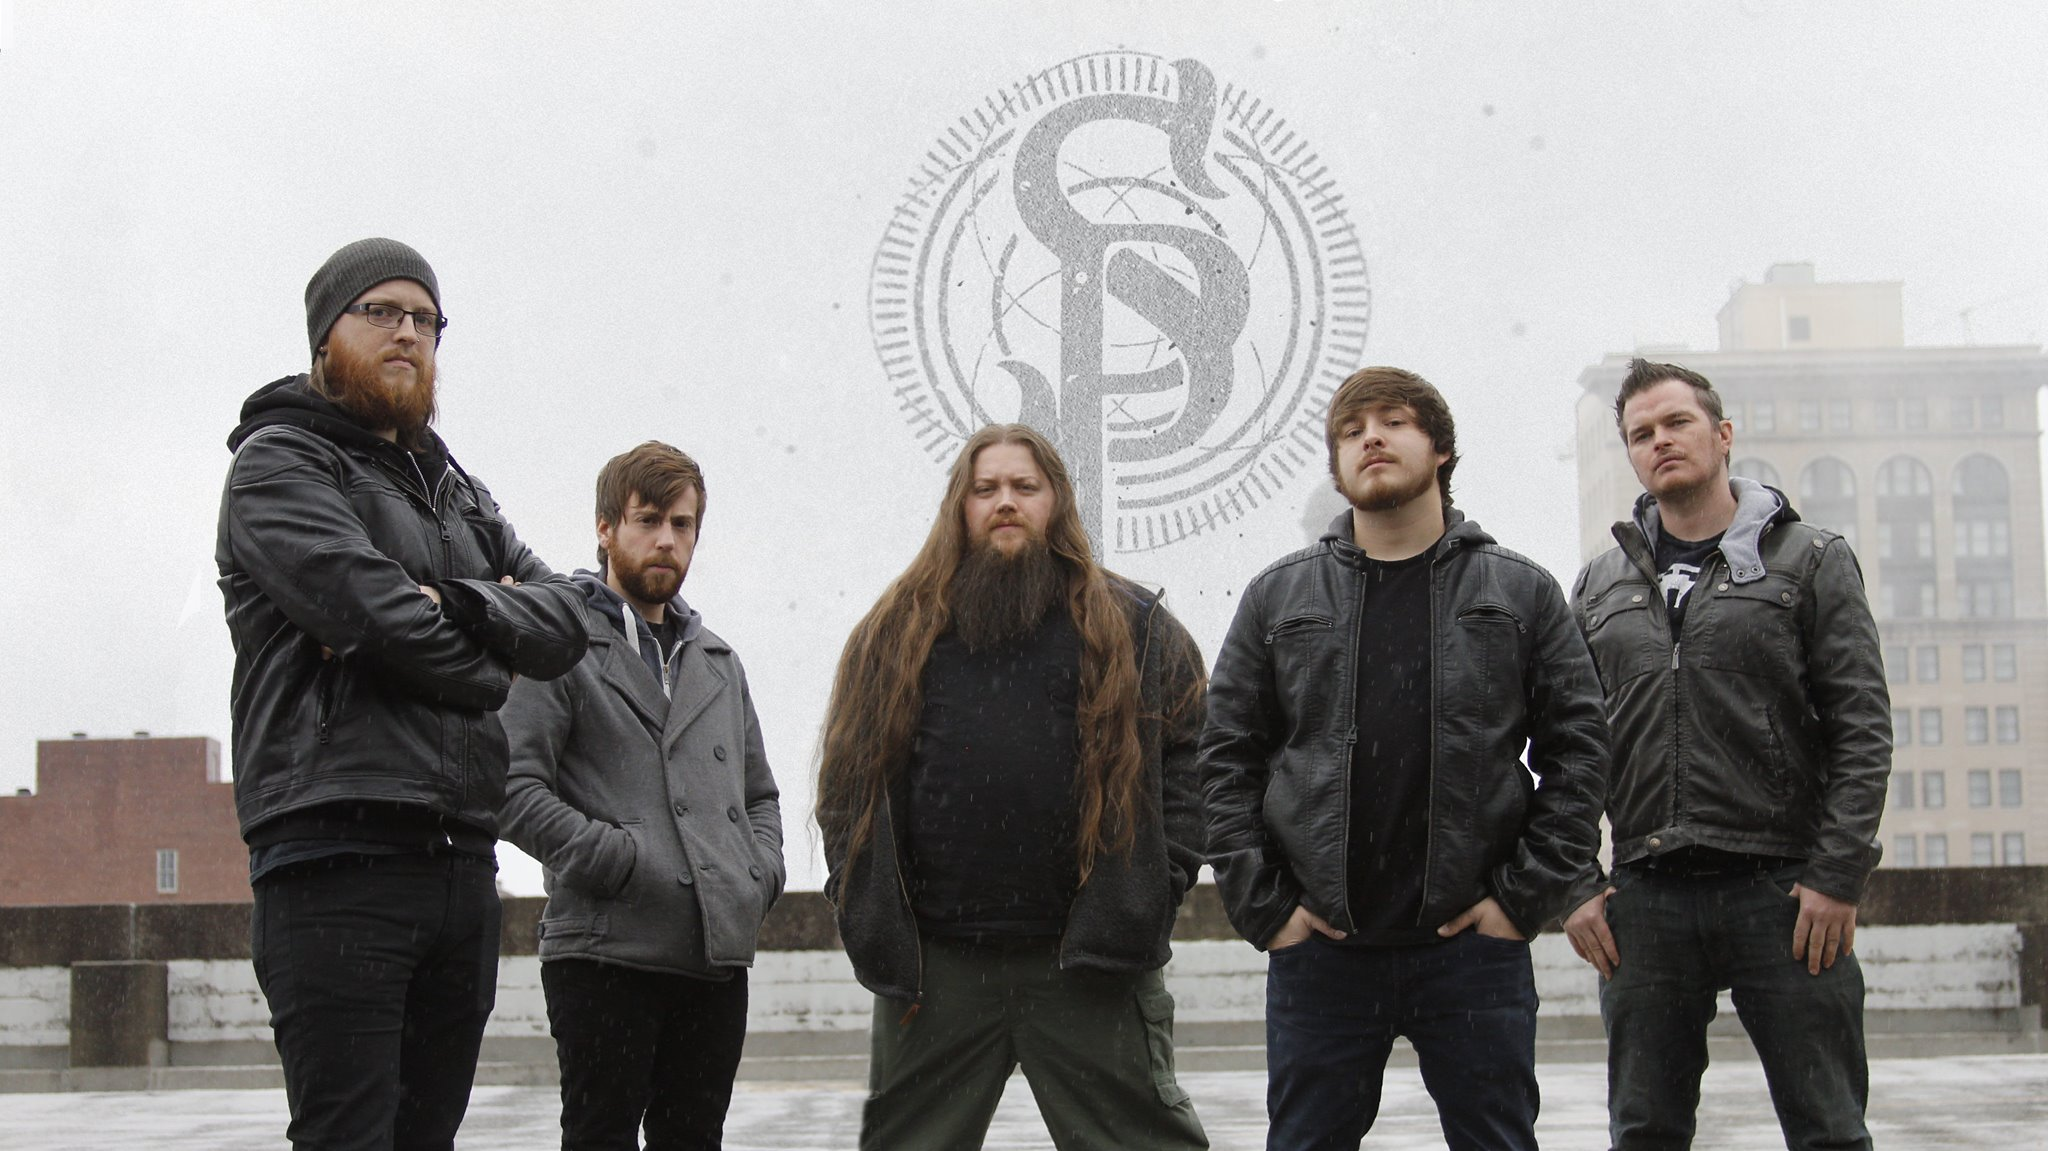 Societys plague petes rock news and views societys plague is an epic melodic metal band from lexington ky utilizing a unique blend of melodic death metal elements dueling guitar harmonies malvernweather Gallery